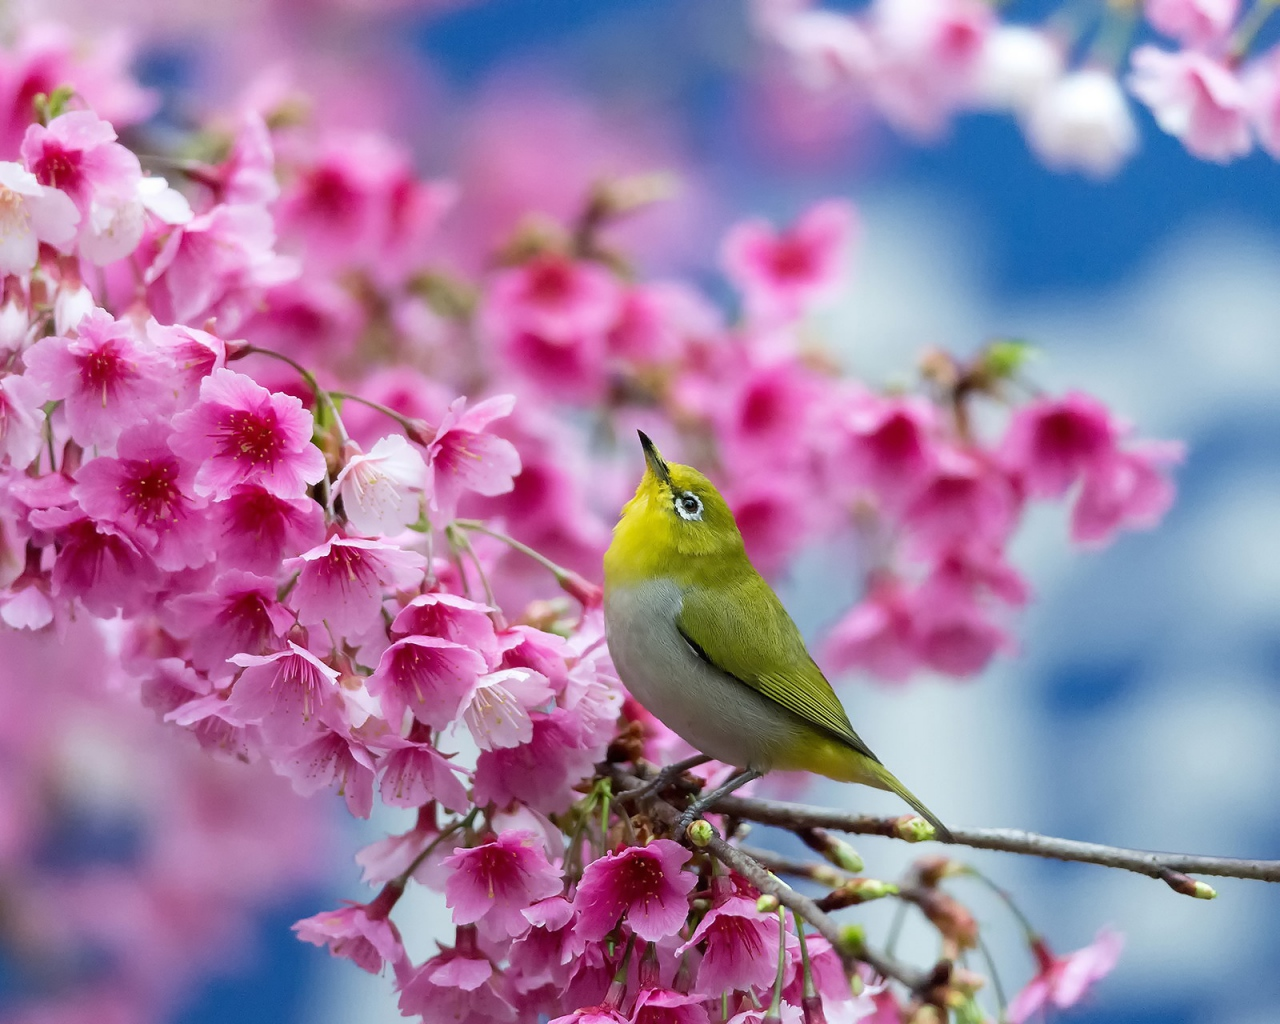 spring_cherry_branch_flowers_beauty_japanese_white_eye_93704_1280x1024